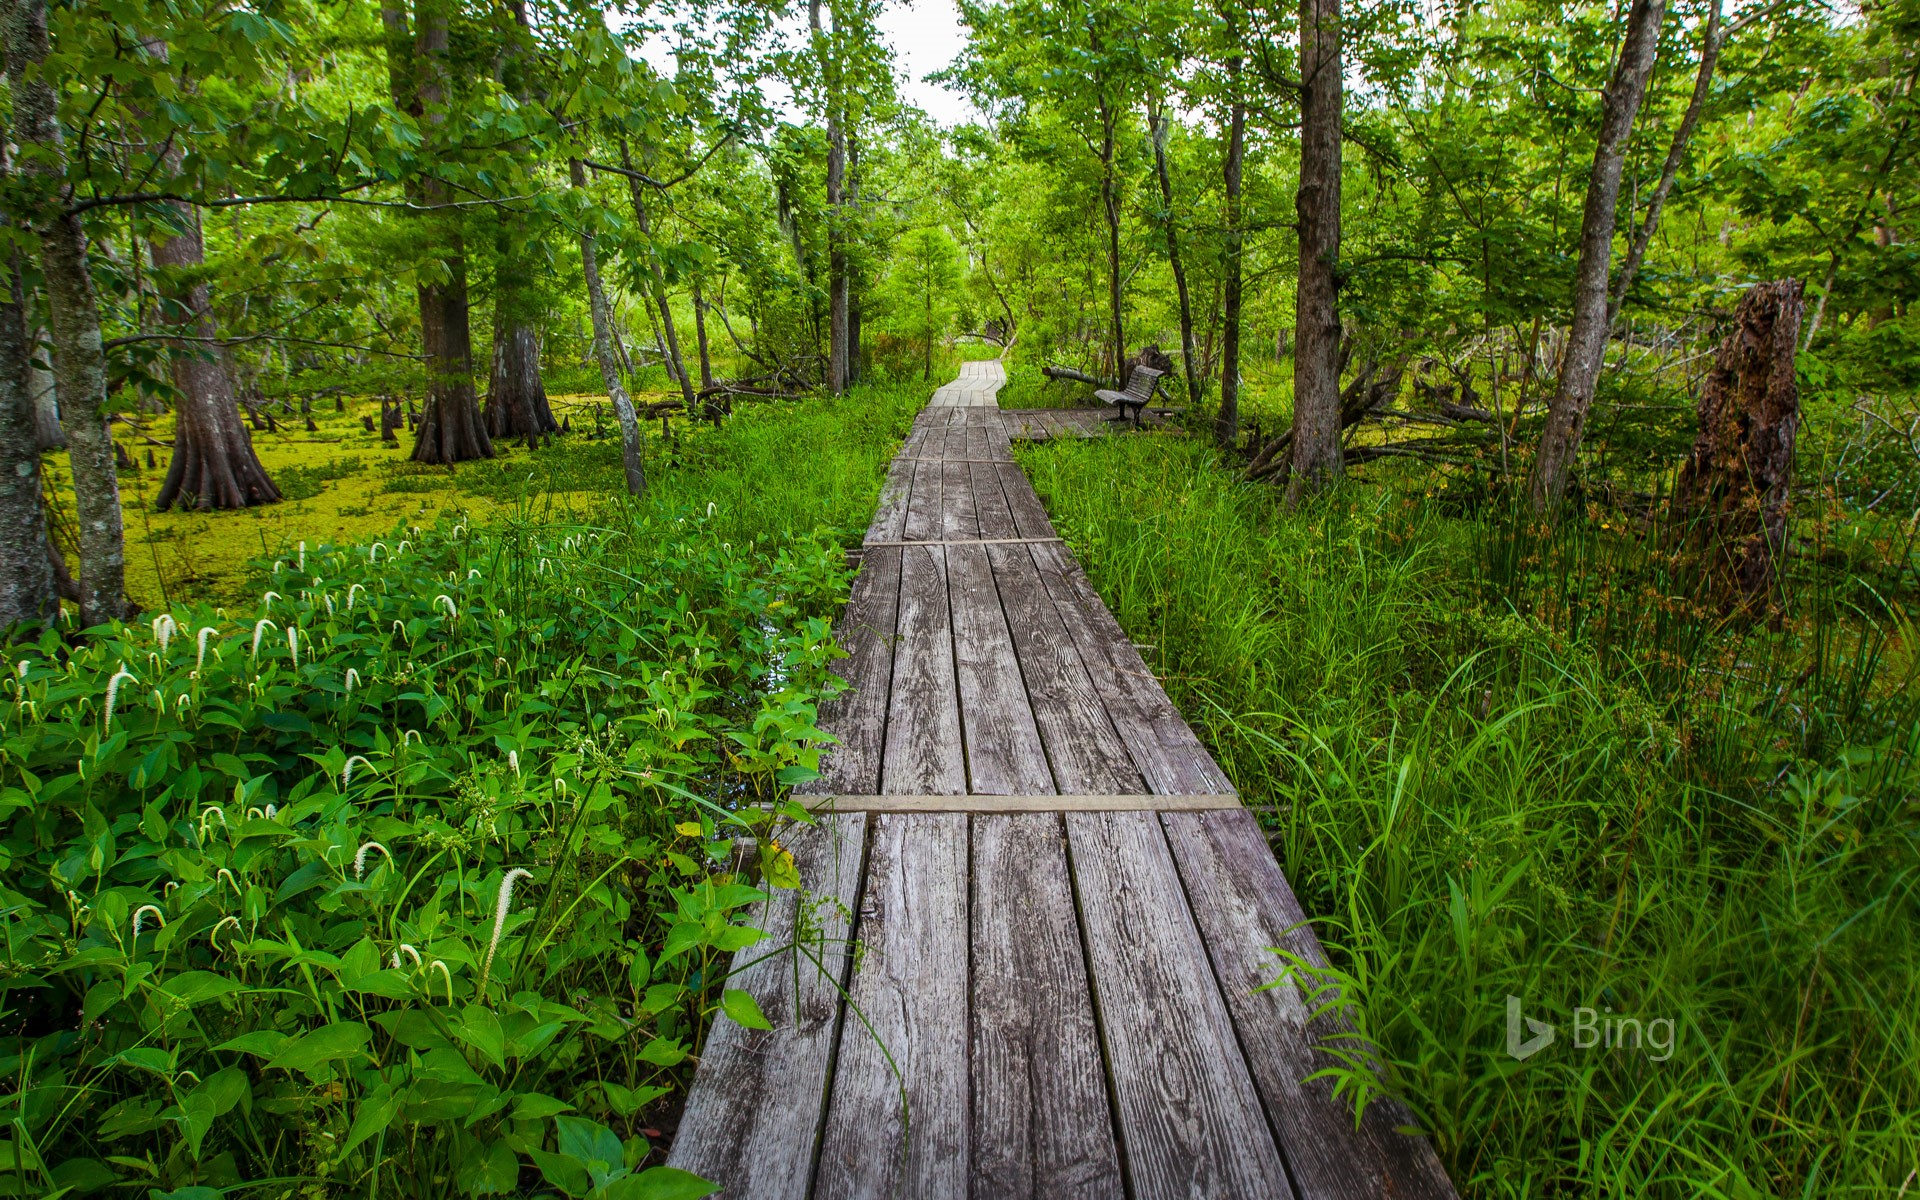 Barataria Trail, part of Jean Lafitte National Historical Park, Louisiana